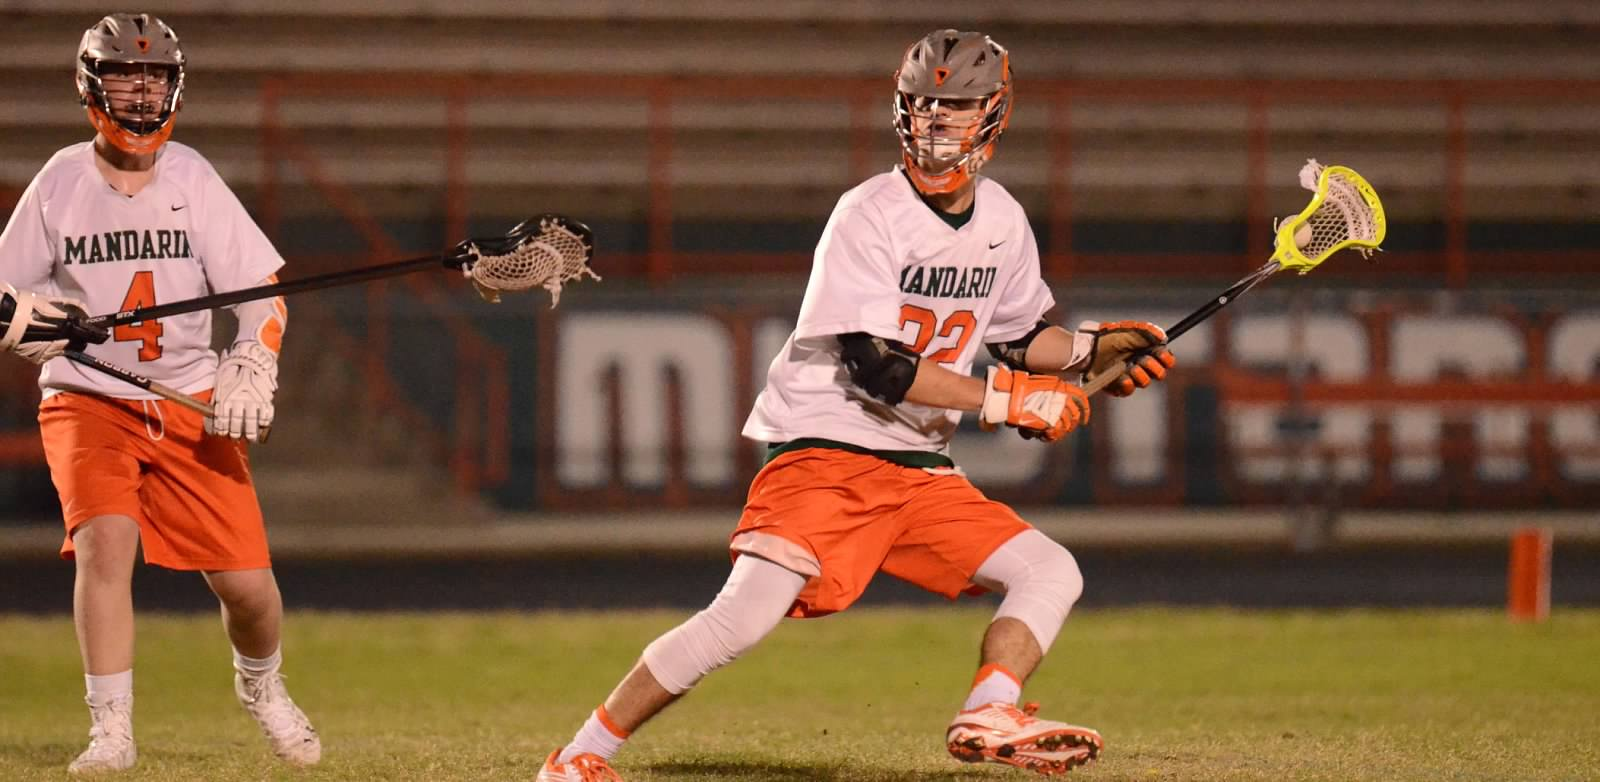 Mandarin 2018 Jared Kane Commits to Embry-Riddle!